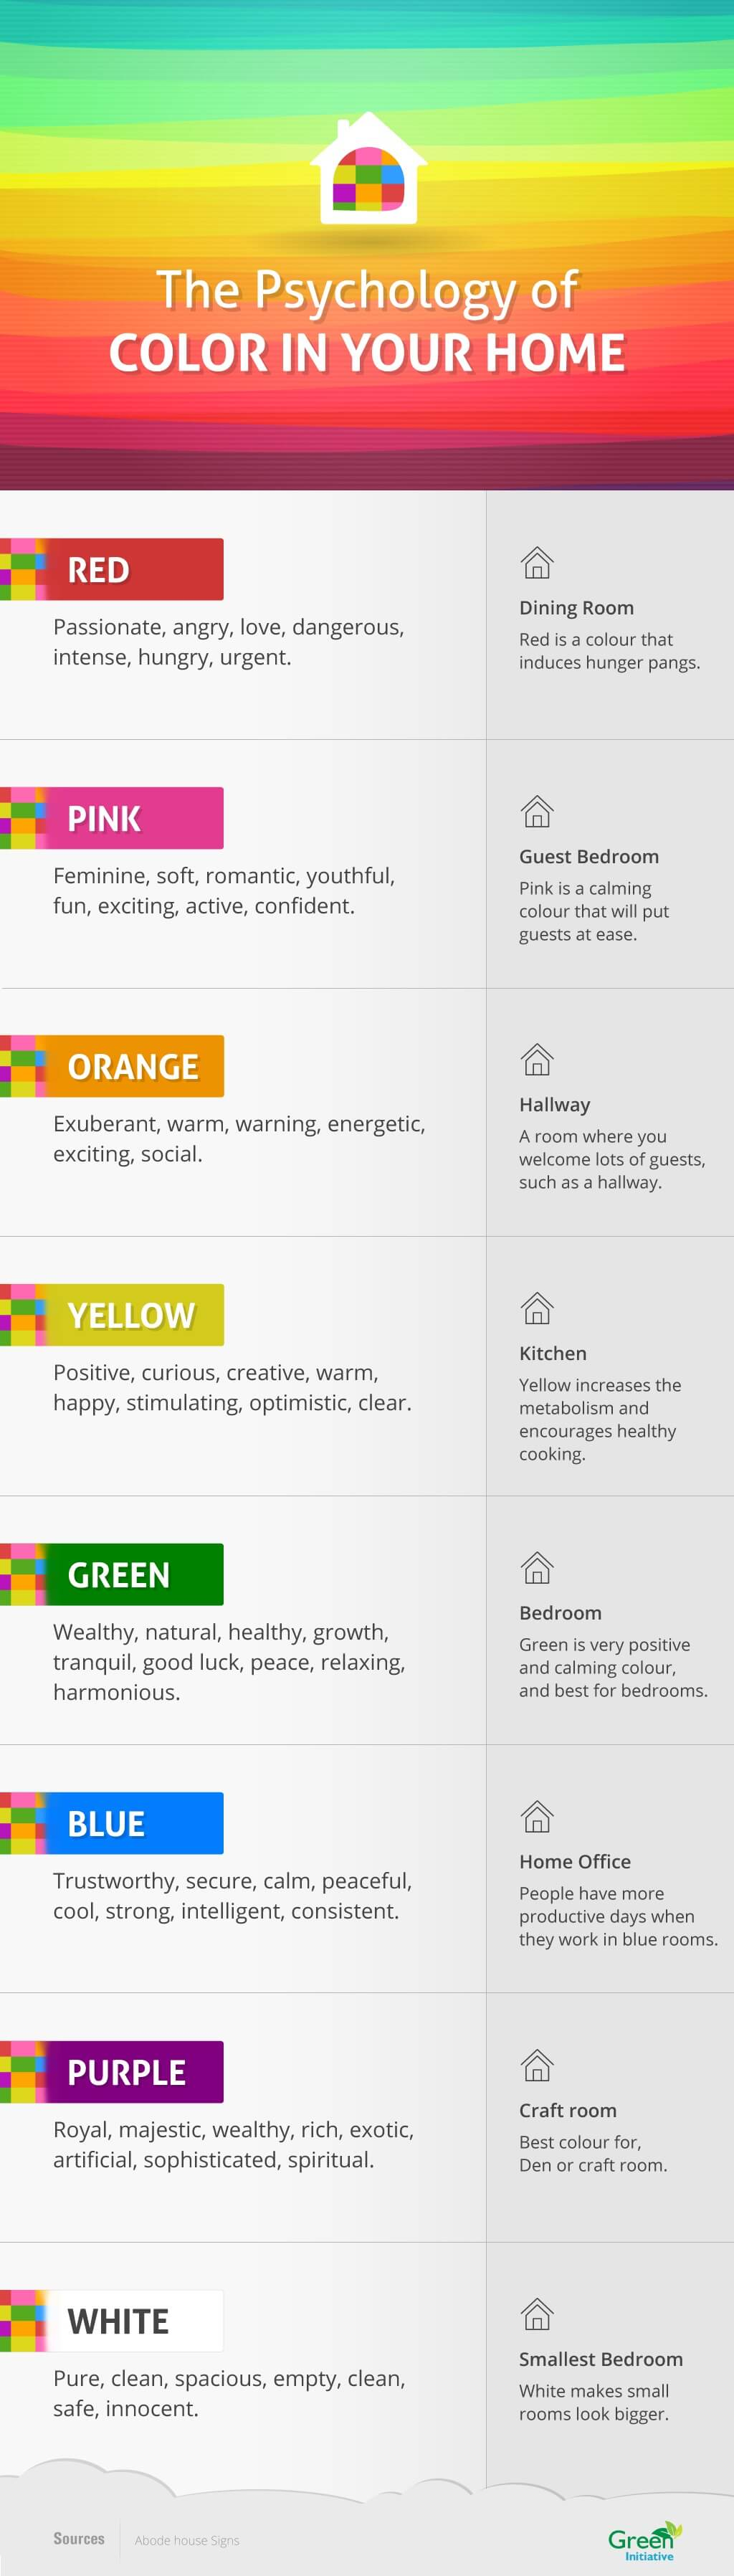 The Psychology of Color in Your Home (Infographic)